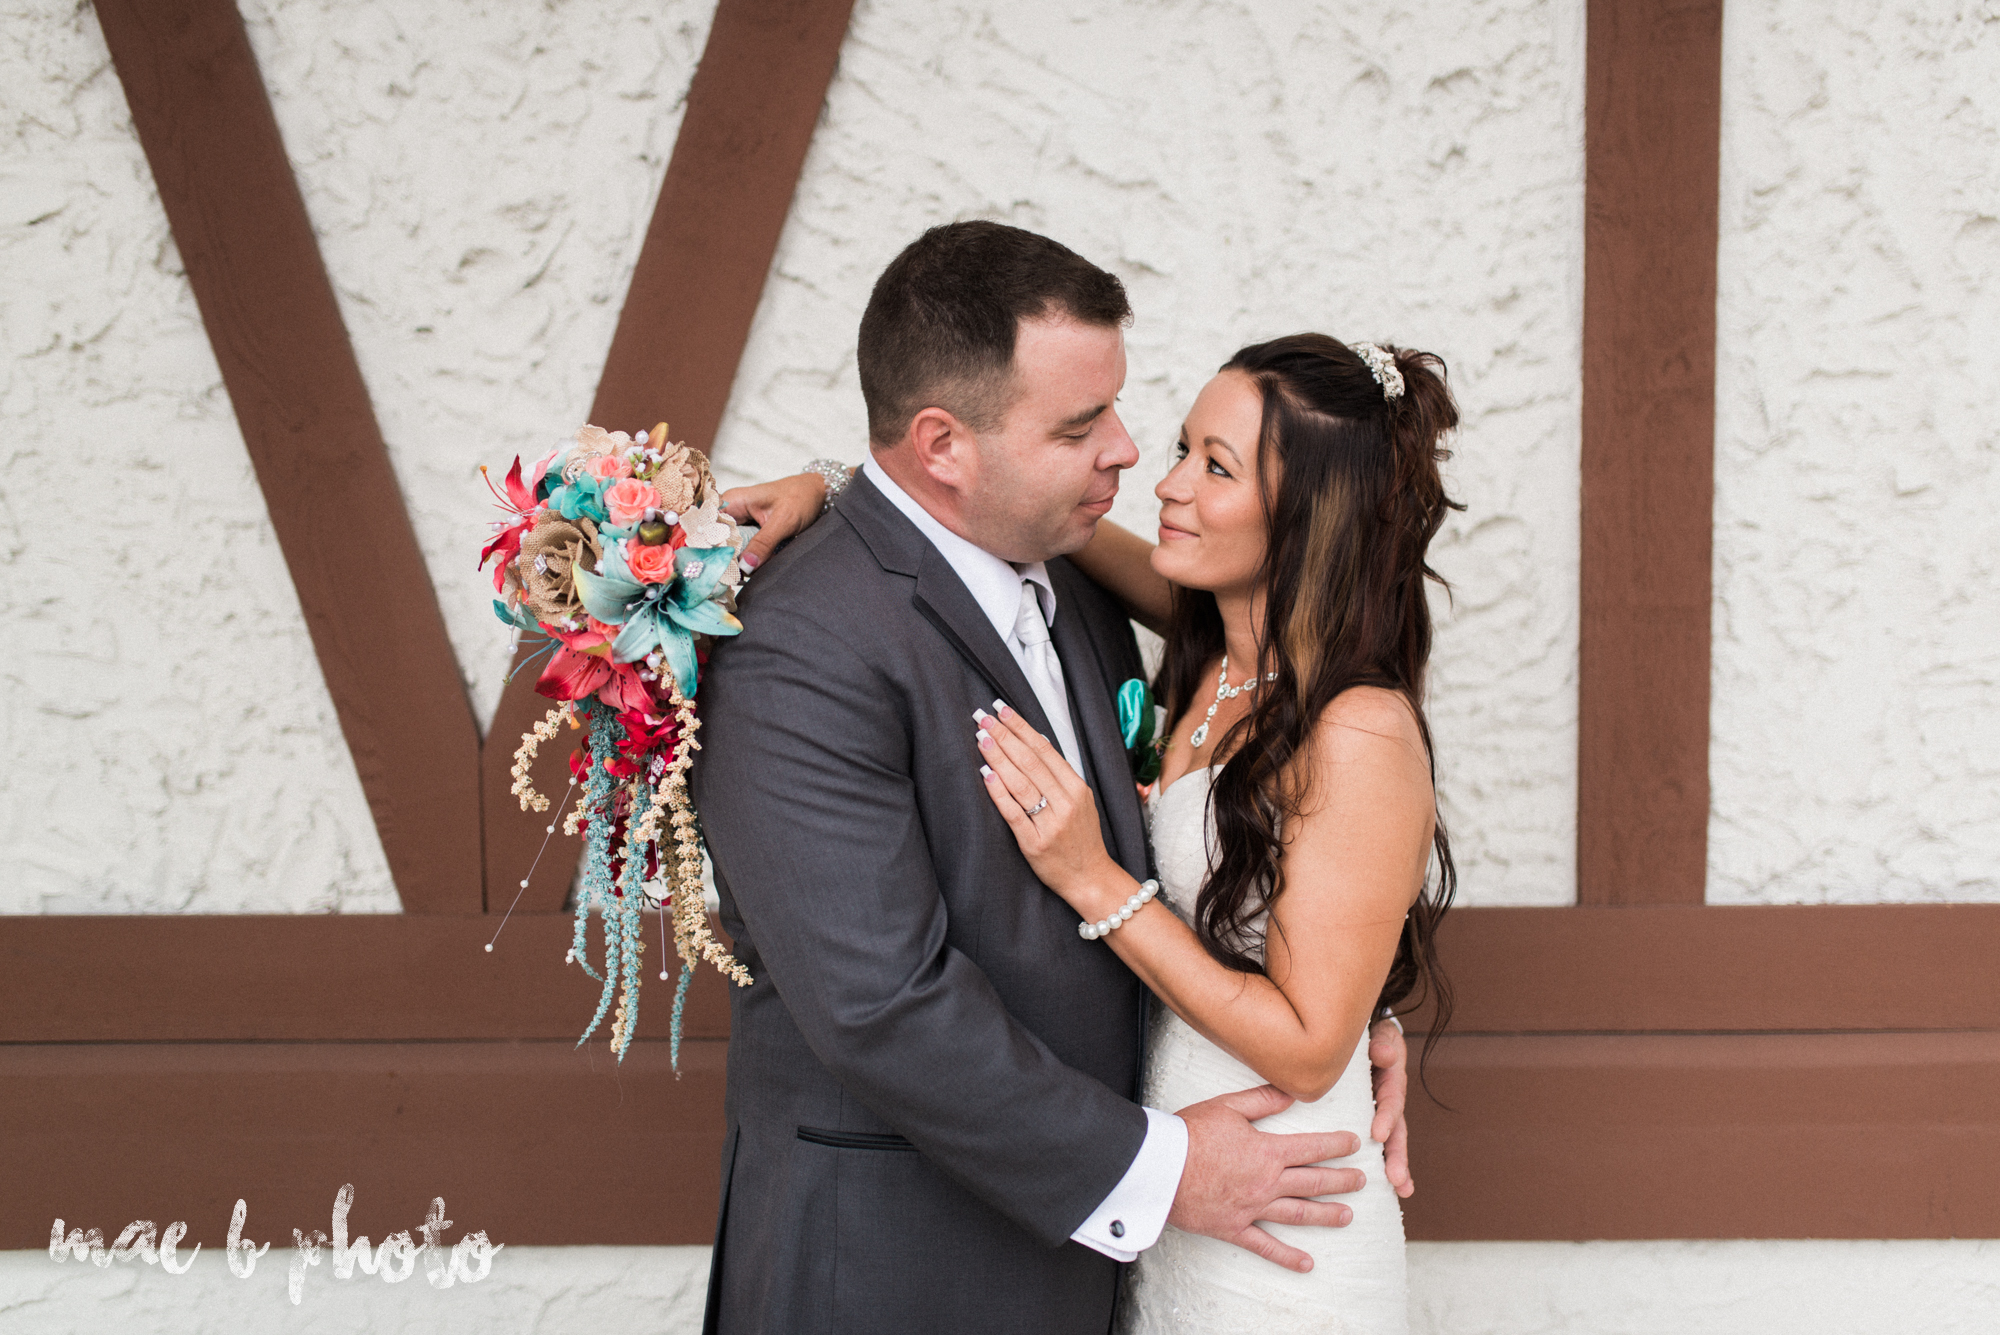 kristy and matt's summer wedding at the embassy in youngstown ohio photographed by youngstown wedding photographer mae b photo-14.jpg